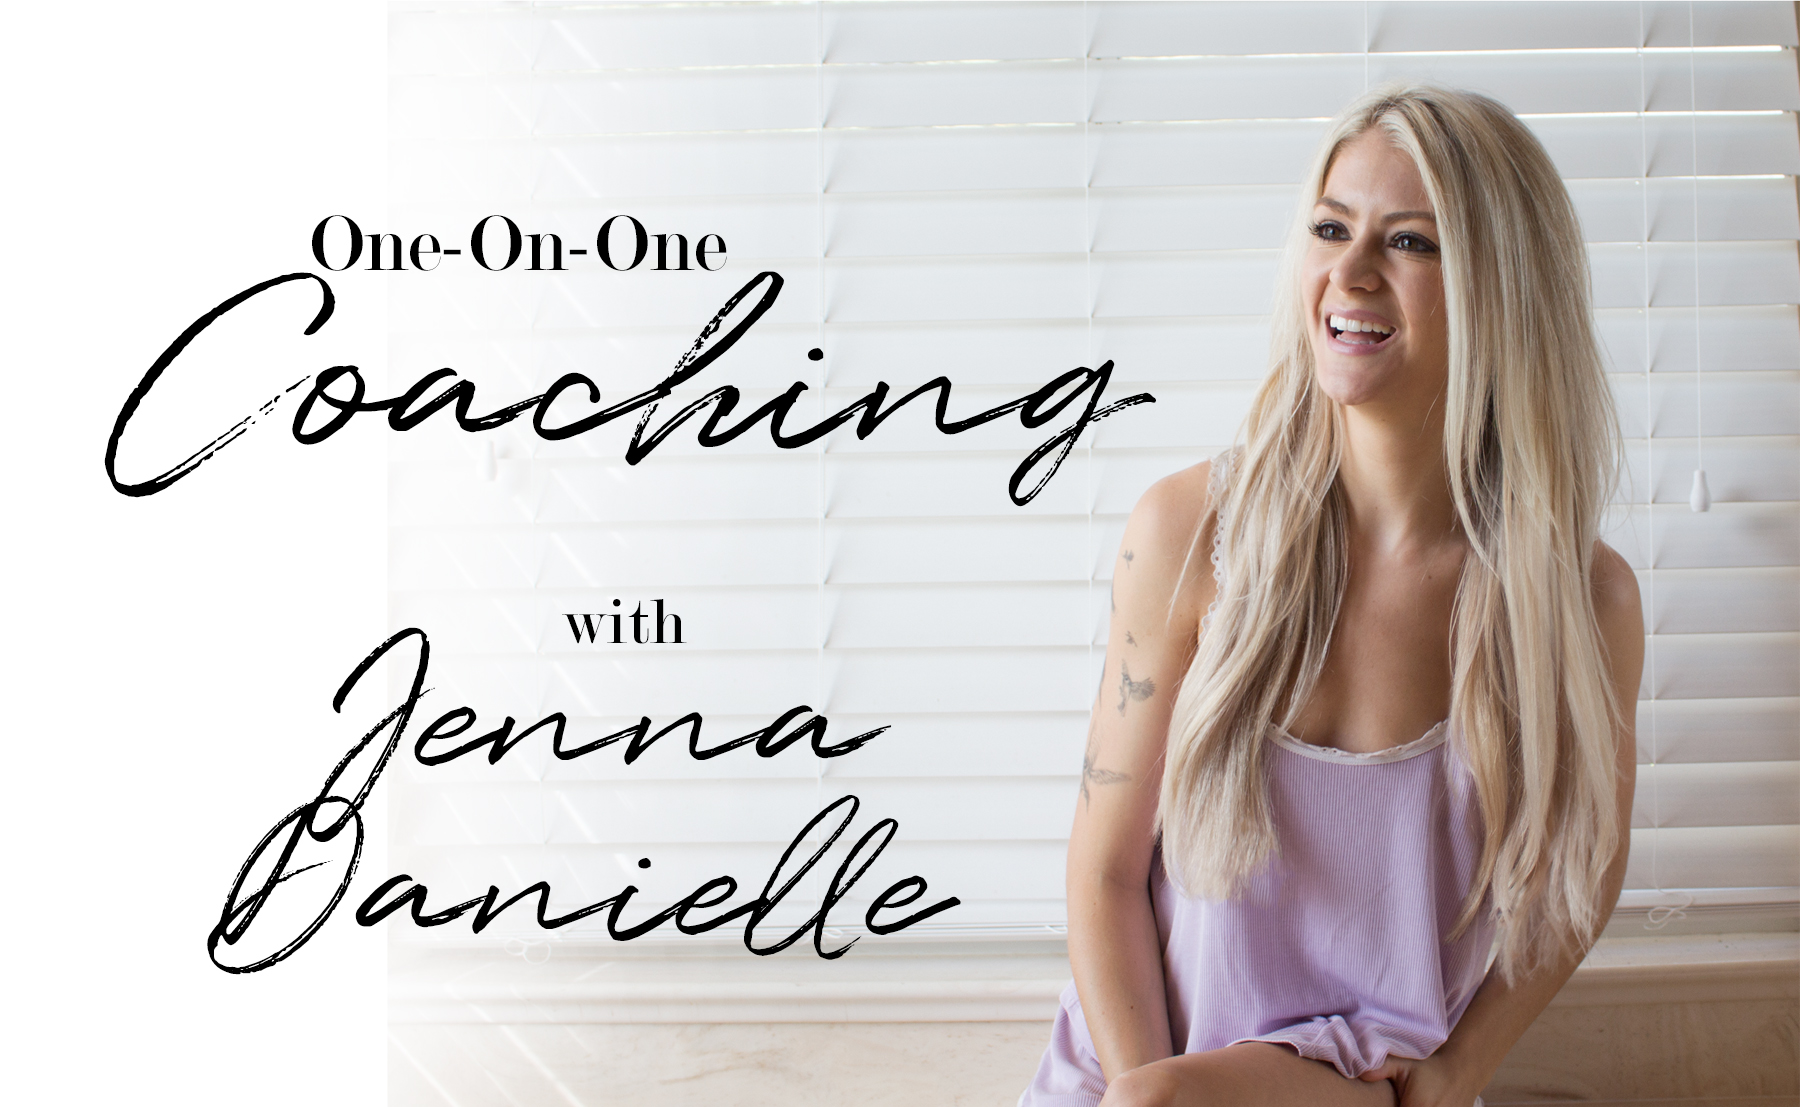 Wellness Coach Jenna Danielle has opened up private coaching packages!